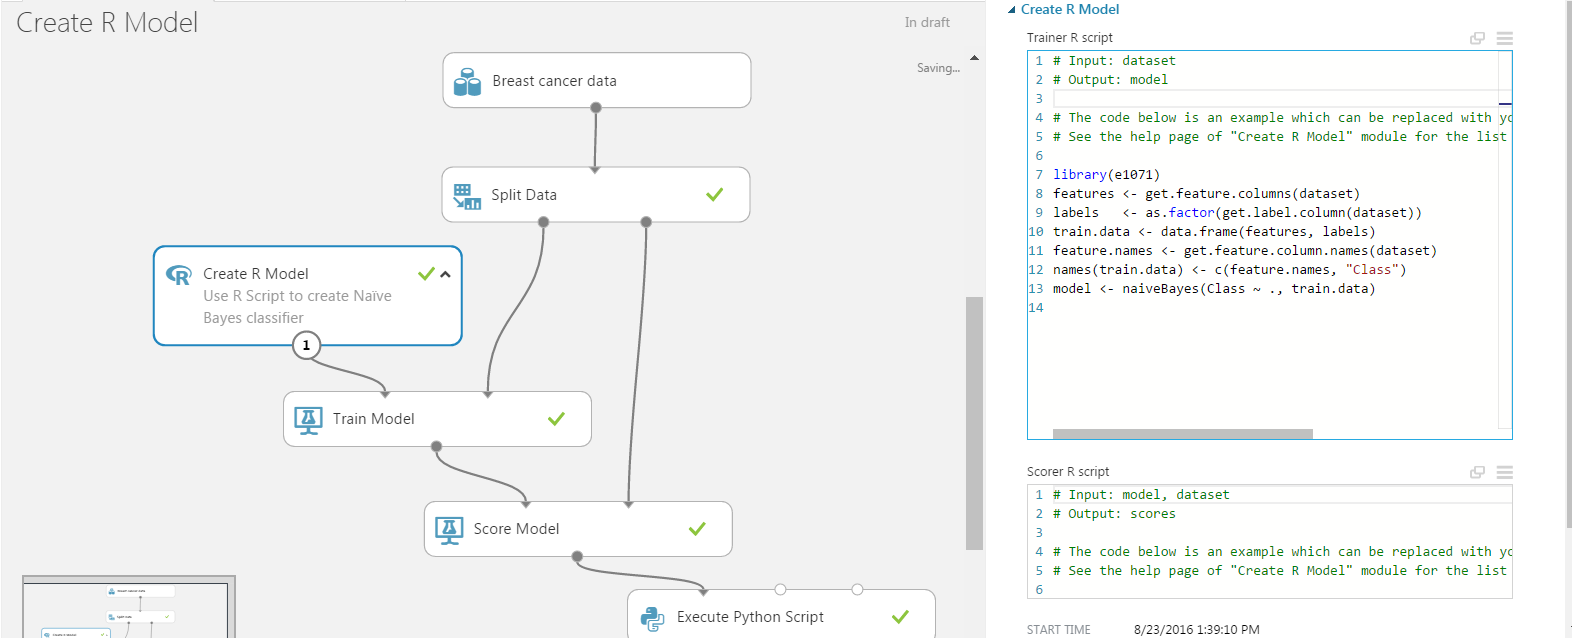 How to evaluate R models in Azure Machine Learning Studio | R-bloggers